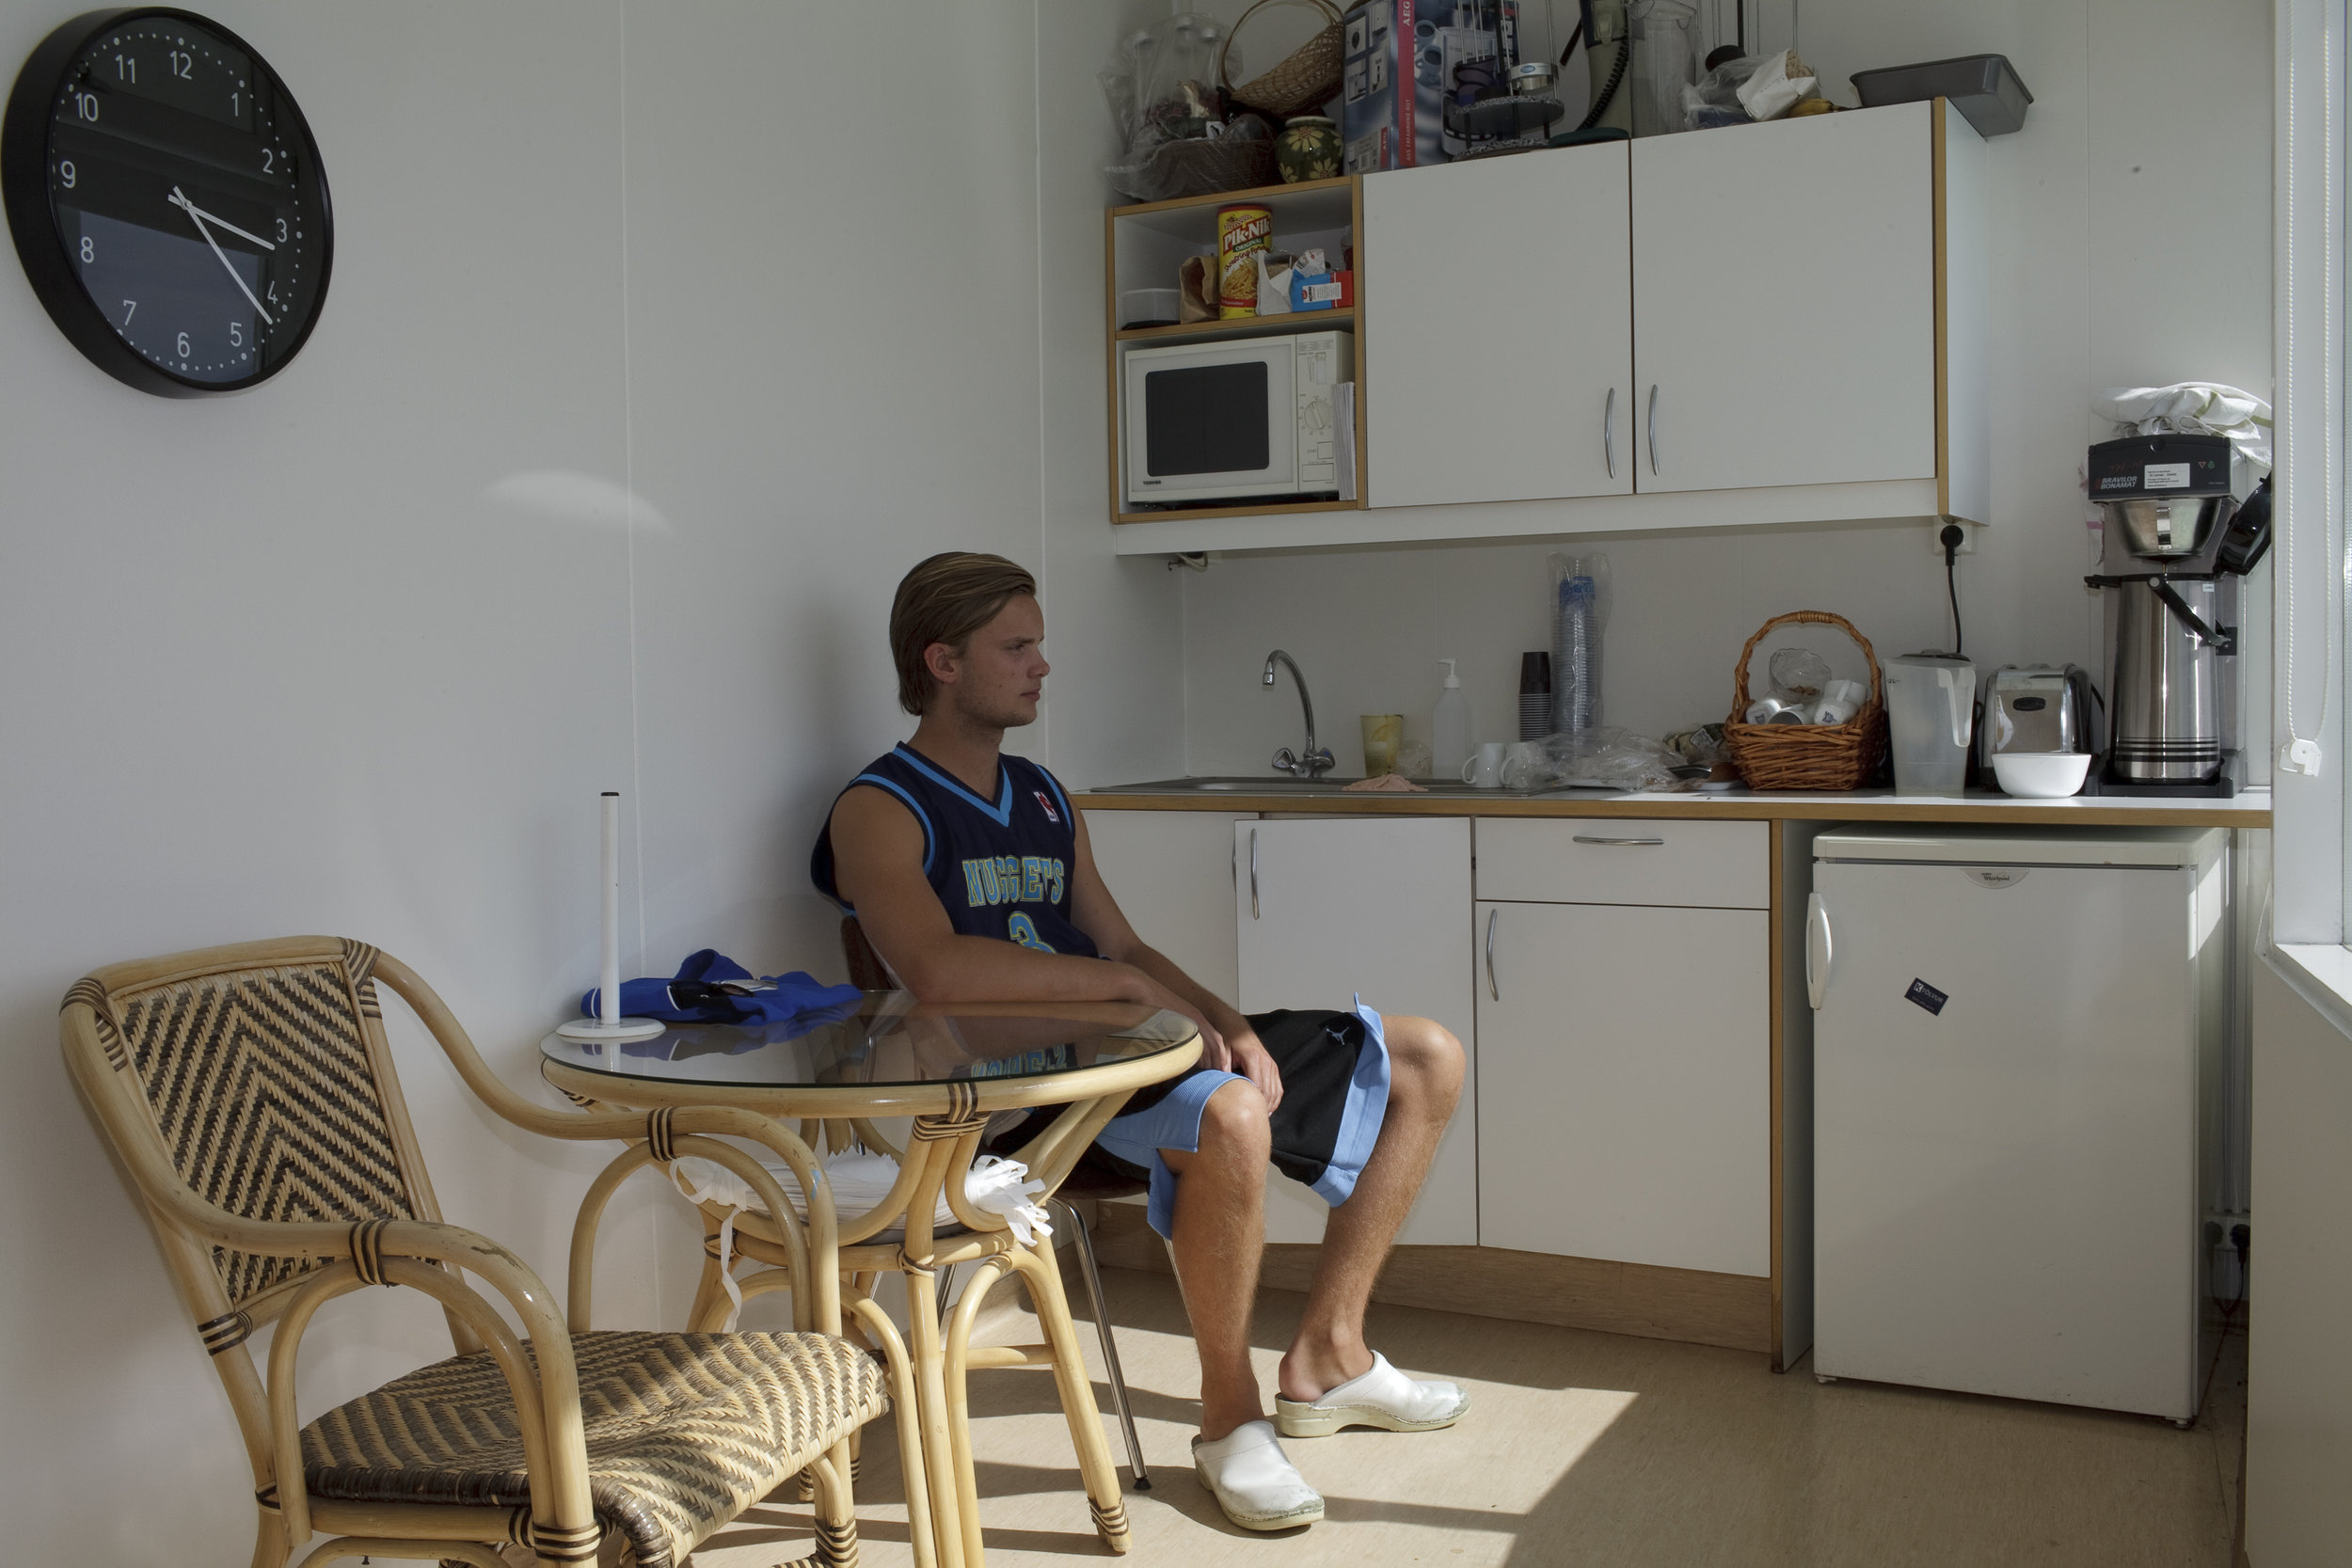 A lifeguard sits in the break room at the local pool in Hveragerði.